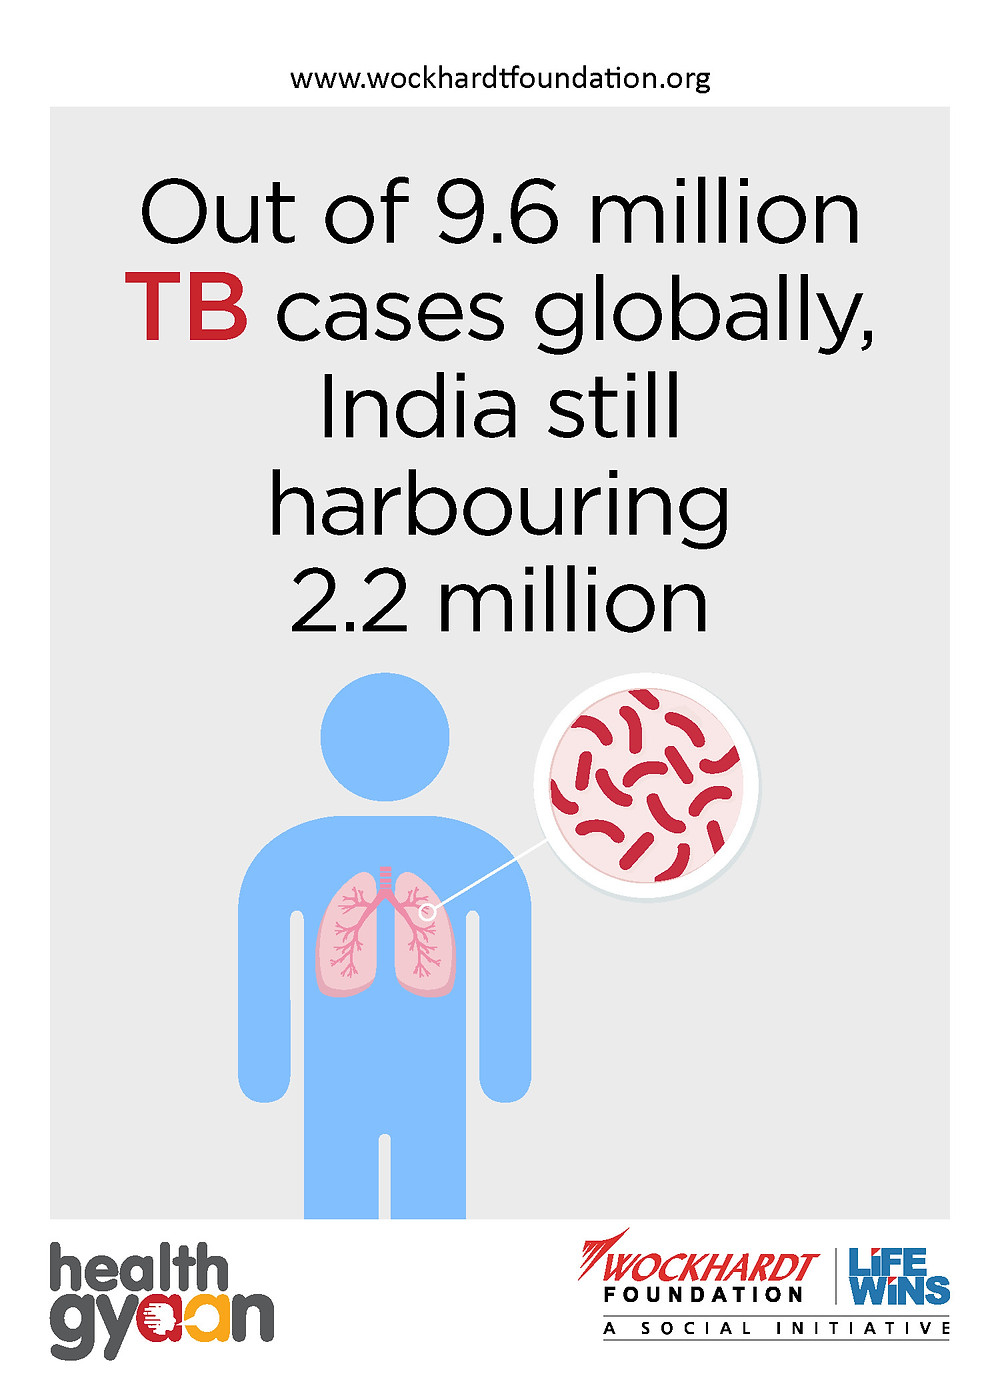 Unglamorous TB continues to kill